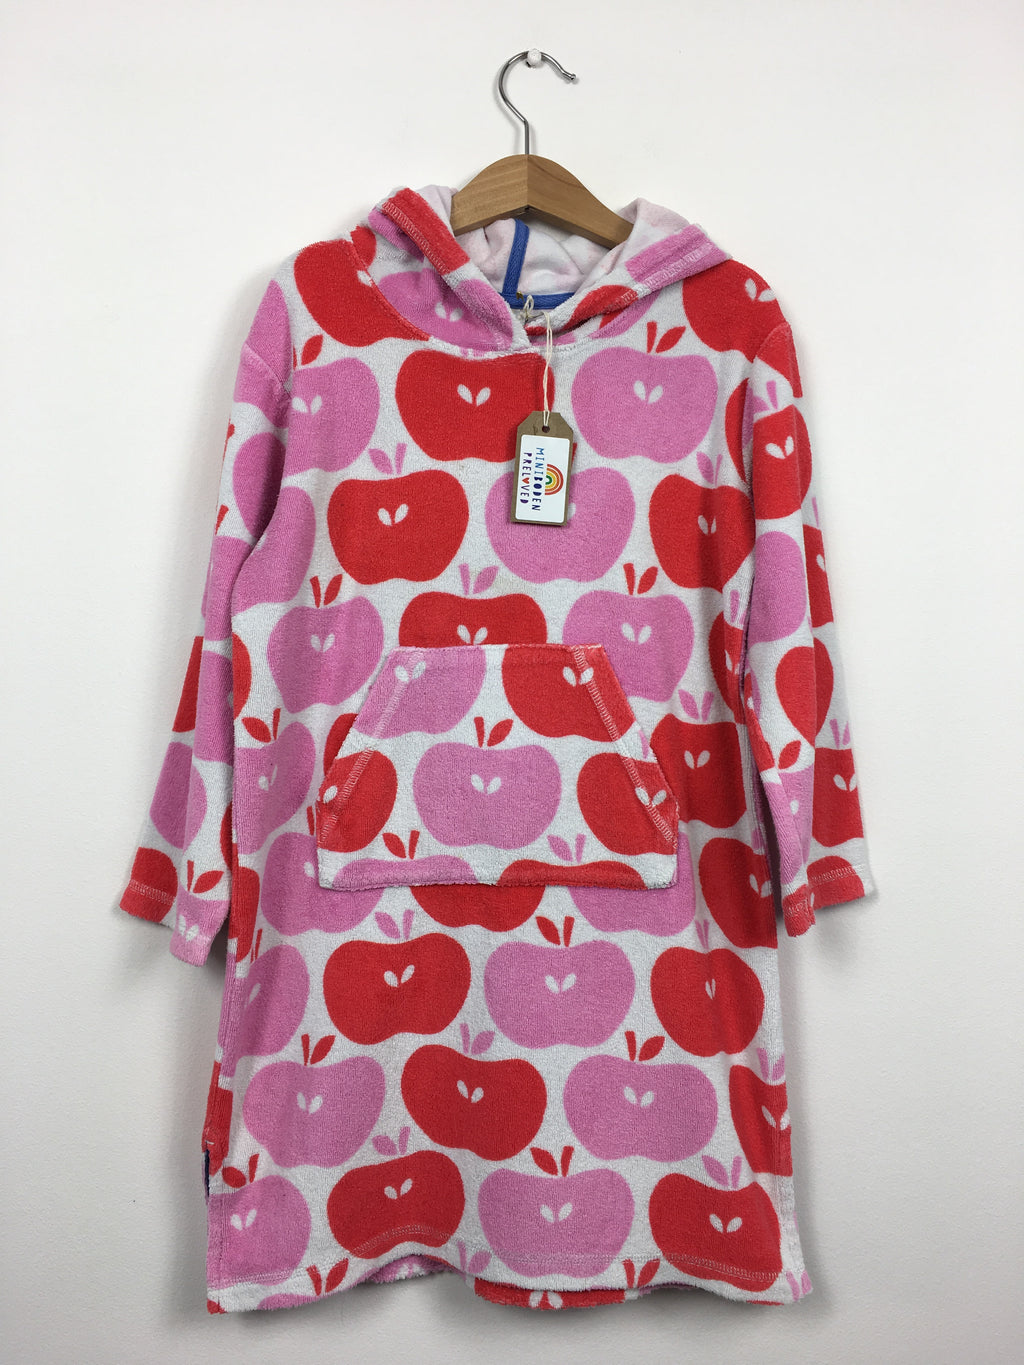 Vibrant Apple Print Towelling Dress (5-6 Years)